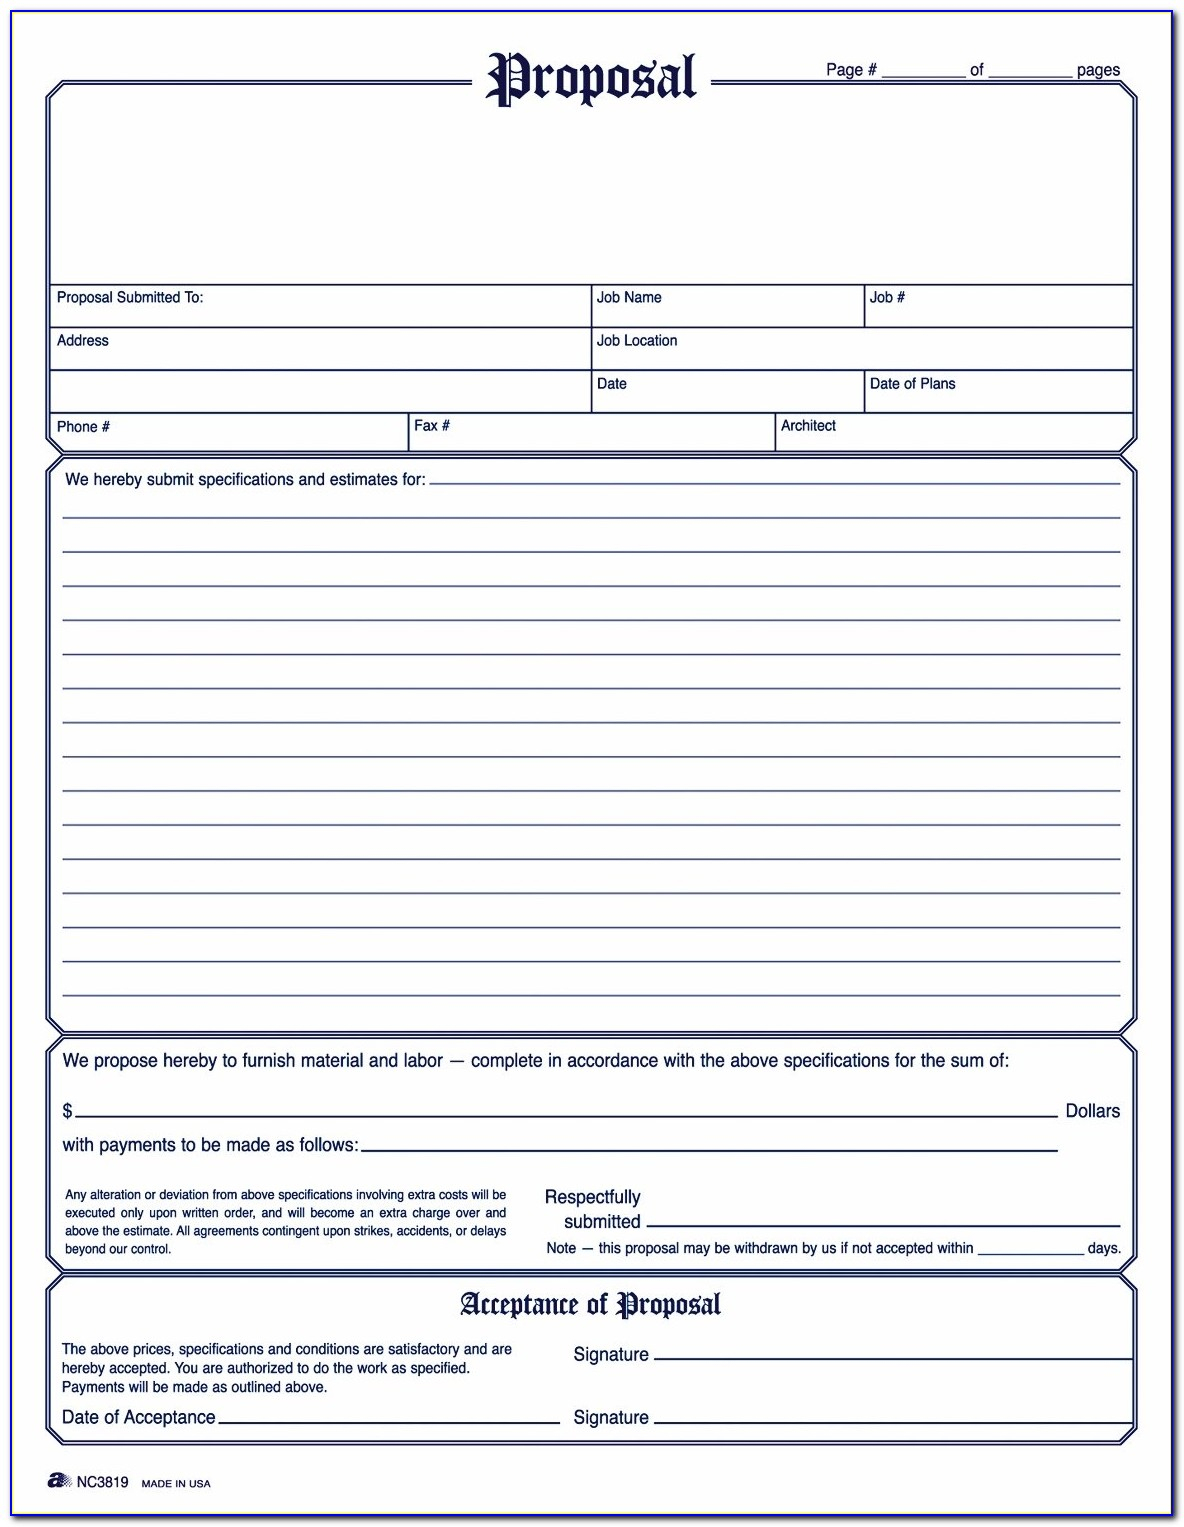 Free Printable Proposal Forms - Form : Resume Examples #yrlw05Appd - Free Printable Proposal Forms